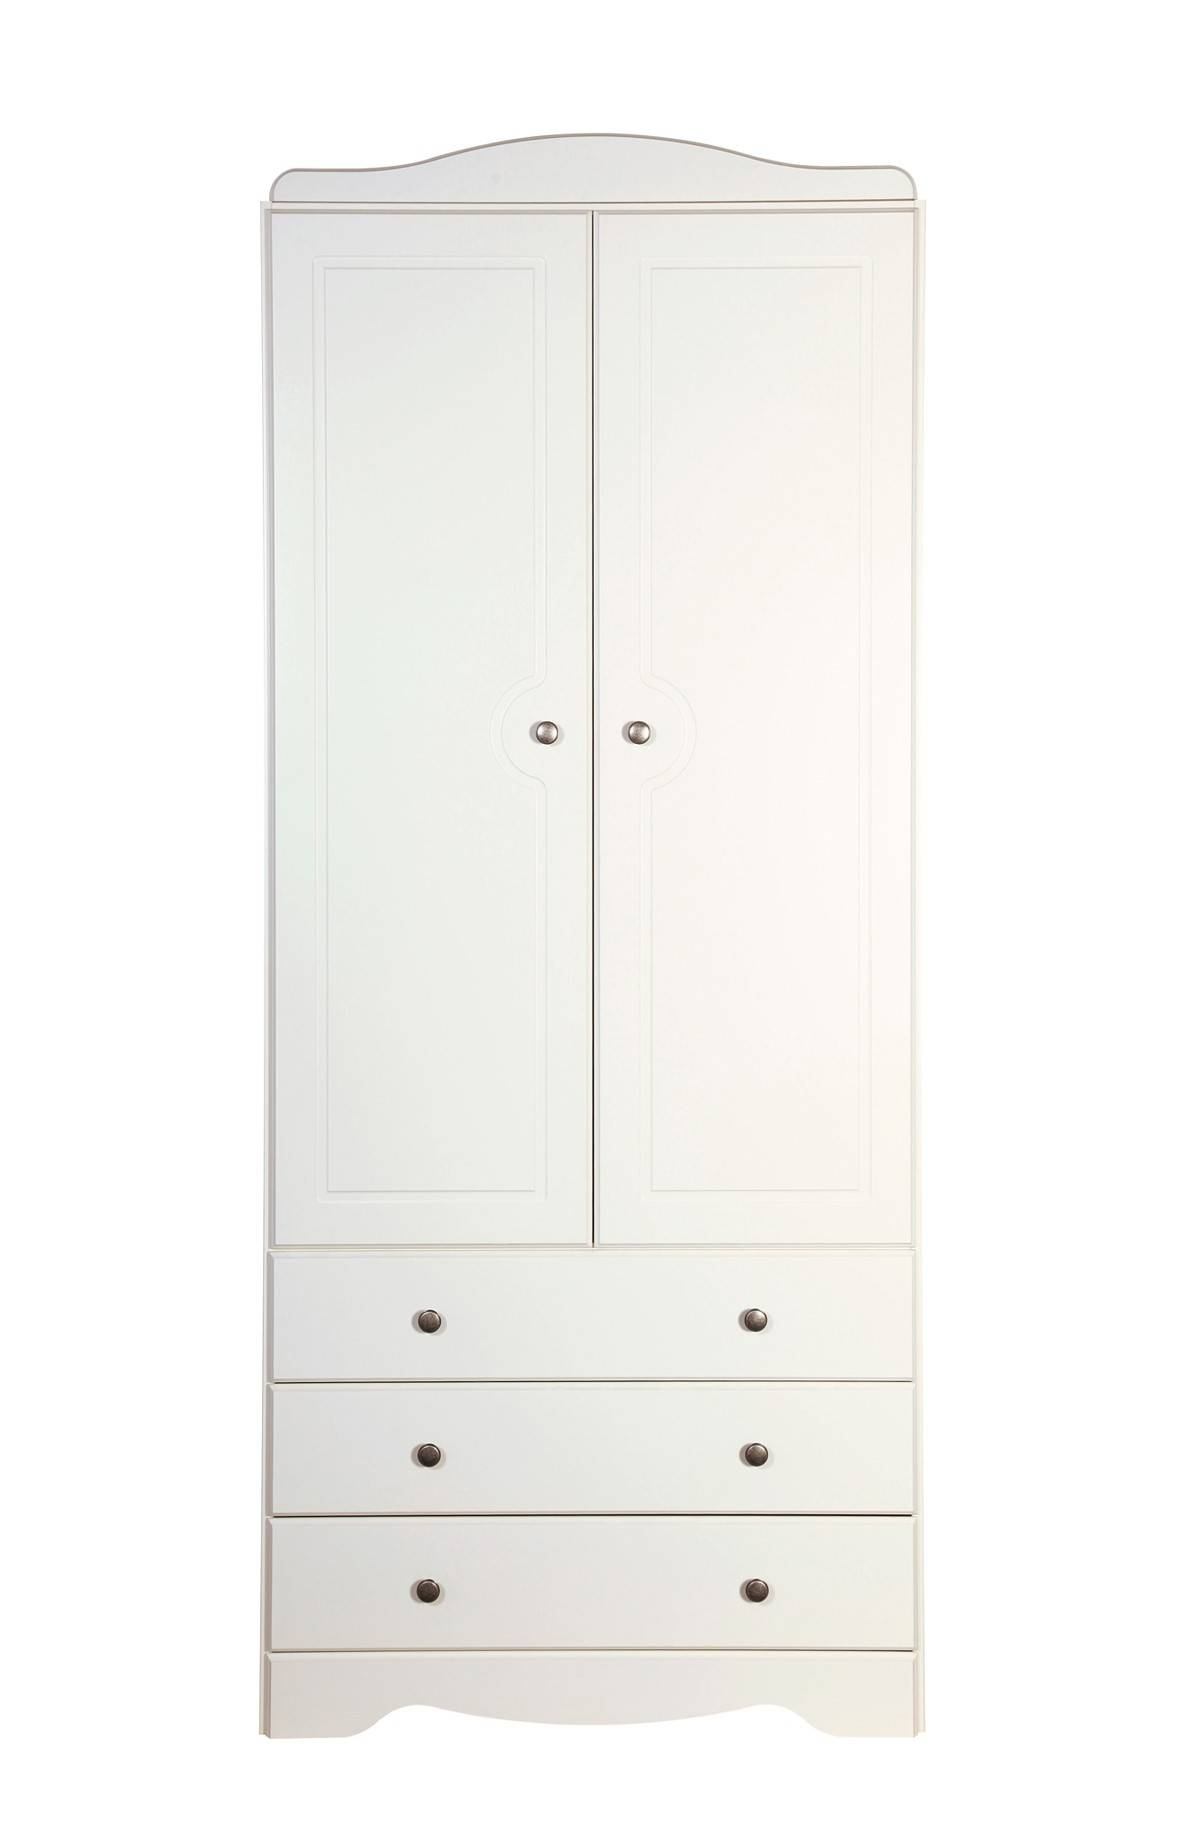 Milford 2 Door 3 Drawer Wardrobe White From The Original Factory Shop for 3 Door White Wardrobes (Image 14 of 30)